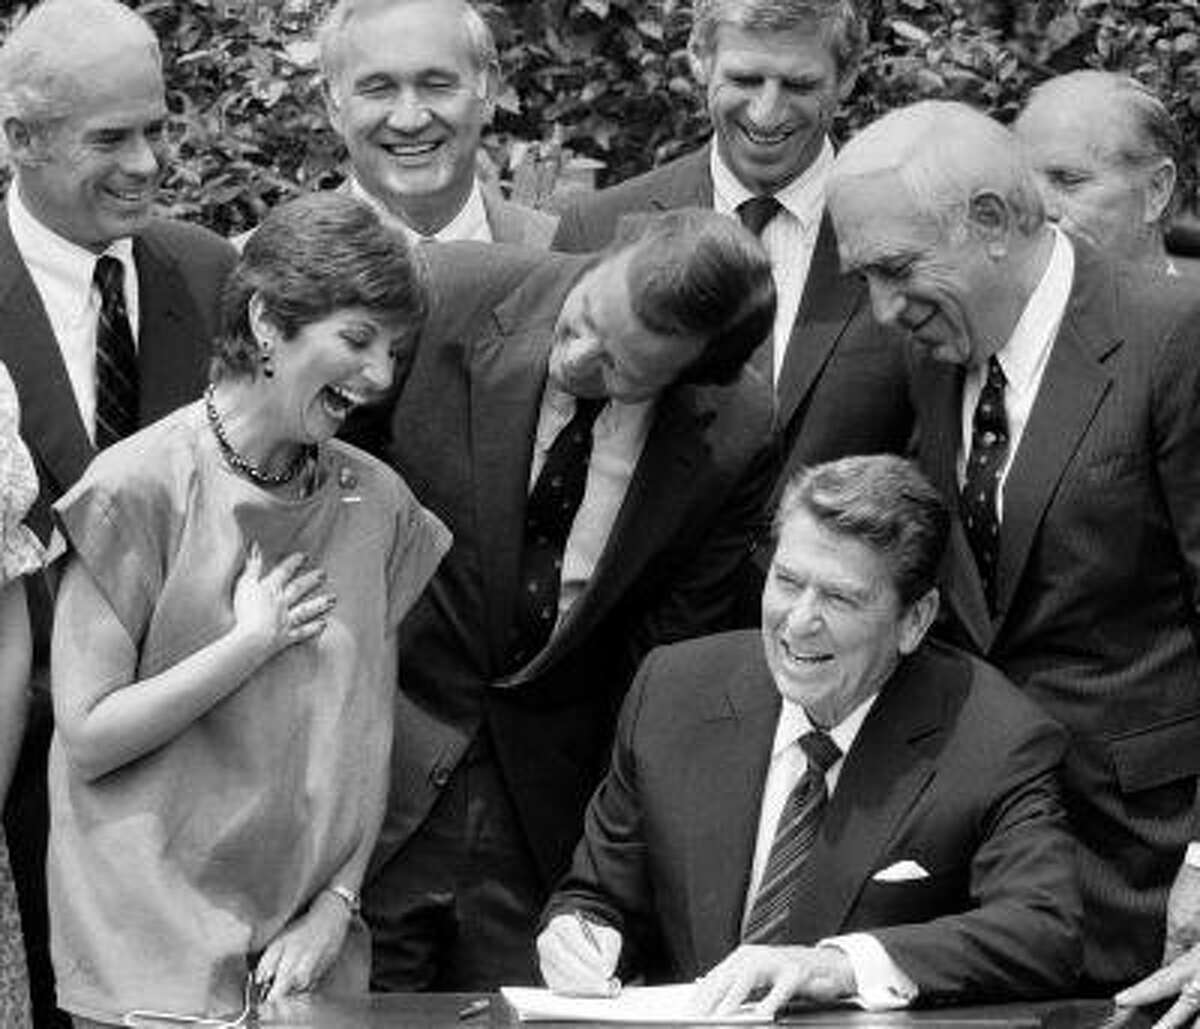 CORRECTS LAUTENBERG'S PARTY AFFILIATION IN FIRST SENTENCE TO DEMOCRAT, INSTEAD OF REPUBLICAN - FILE - In this July 17, 1984 file photo, President Ronald Reagan, seated, signs legislation raising the national drinking age to 21 while New Jersey Democrat Sen. Frank Lautenberg, center right, New Jersey Gov. Thomas Kean, center and MADD founder Candy Lightner, center left, look on. Lautenberg, a multimillionaire New Jersey businessman who New Jersey Democrats recruited out of retirement in September 2002, has died at age 89. In addition, from left, back, are Rep. John Edward Porter, R-Ill.; Rep. Gene Snyder, R-Ky. and Sen. John Danforth, R-Mo. (AP Photo, File)